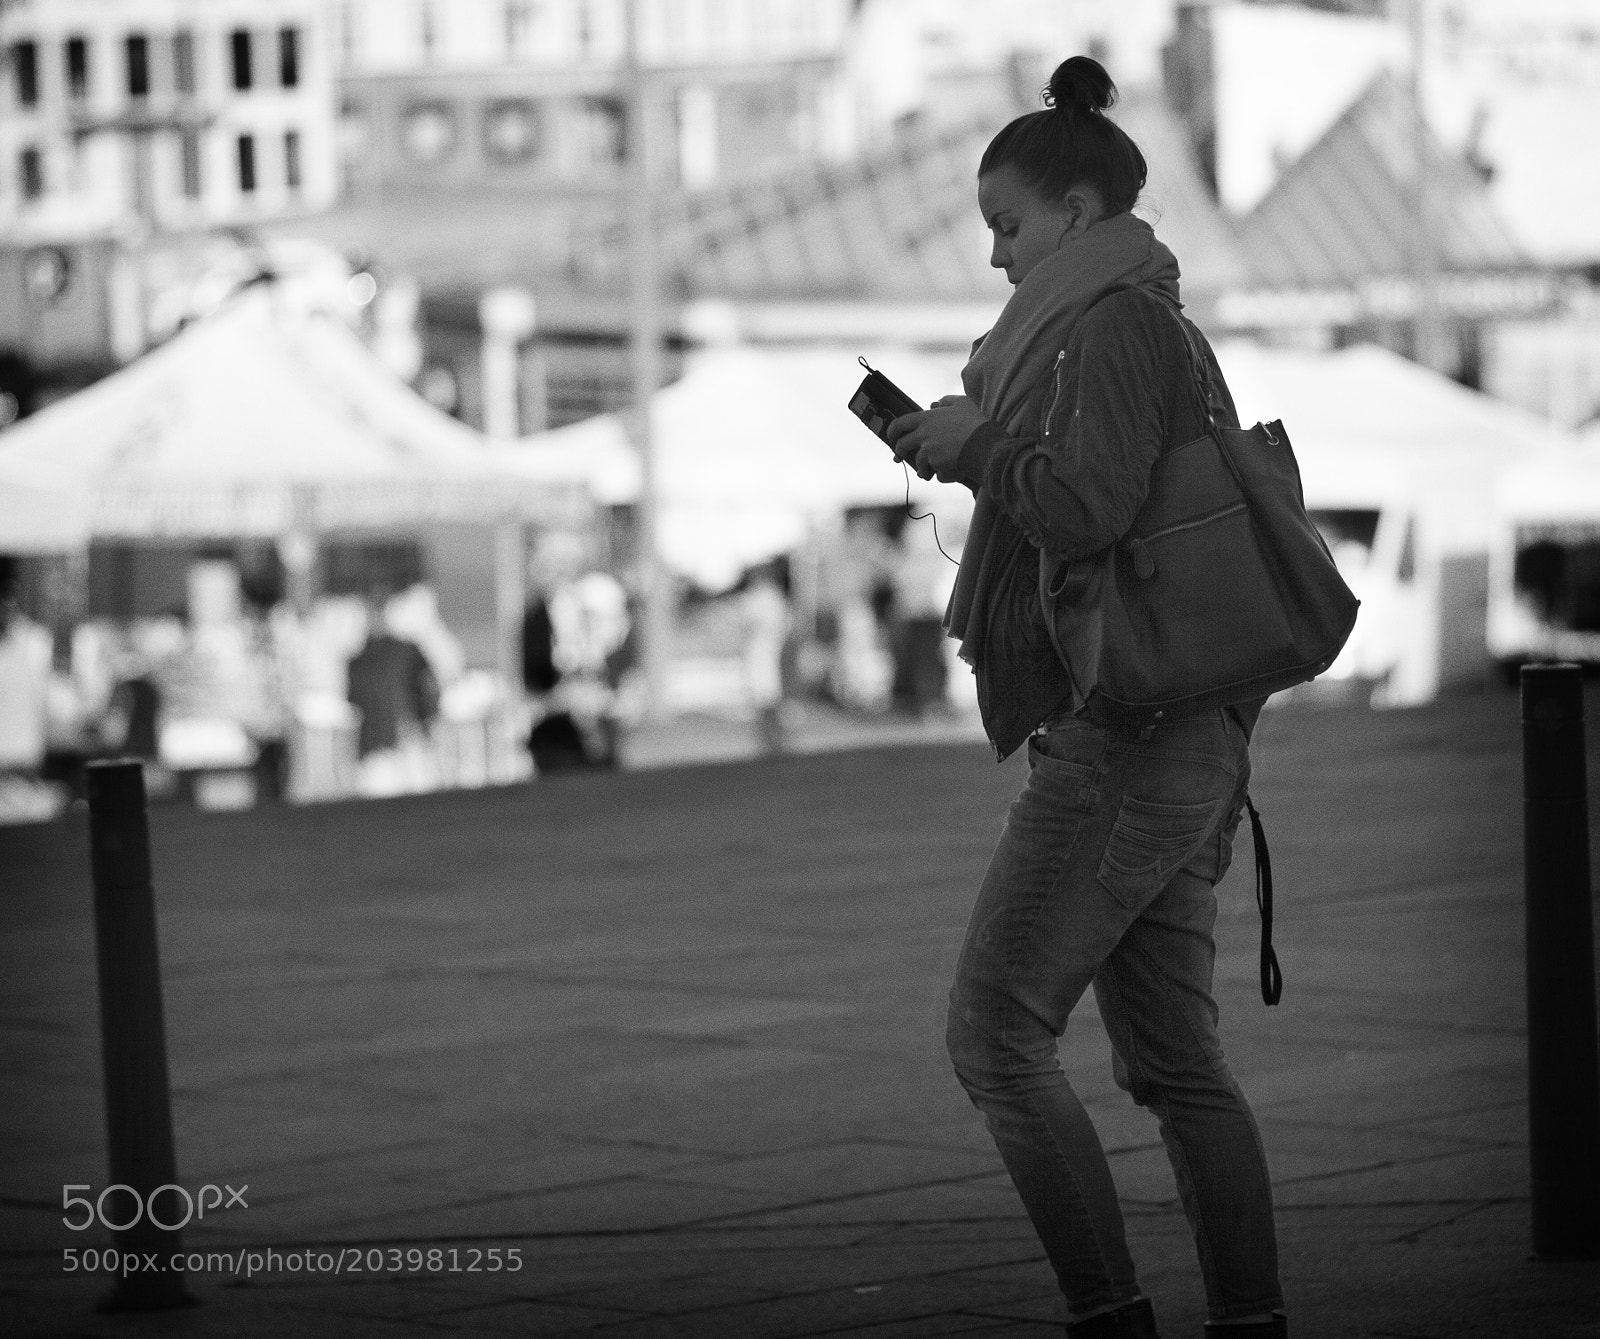 Checking phone messages, Canon EOS 5D MARK II, Canon EF 135mm f/2.8 Soft